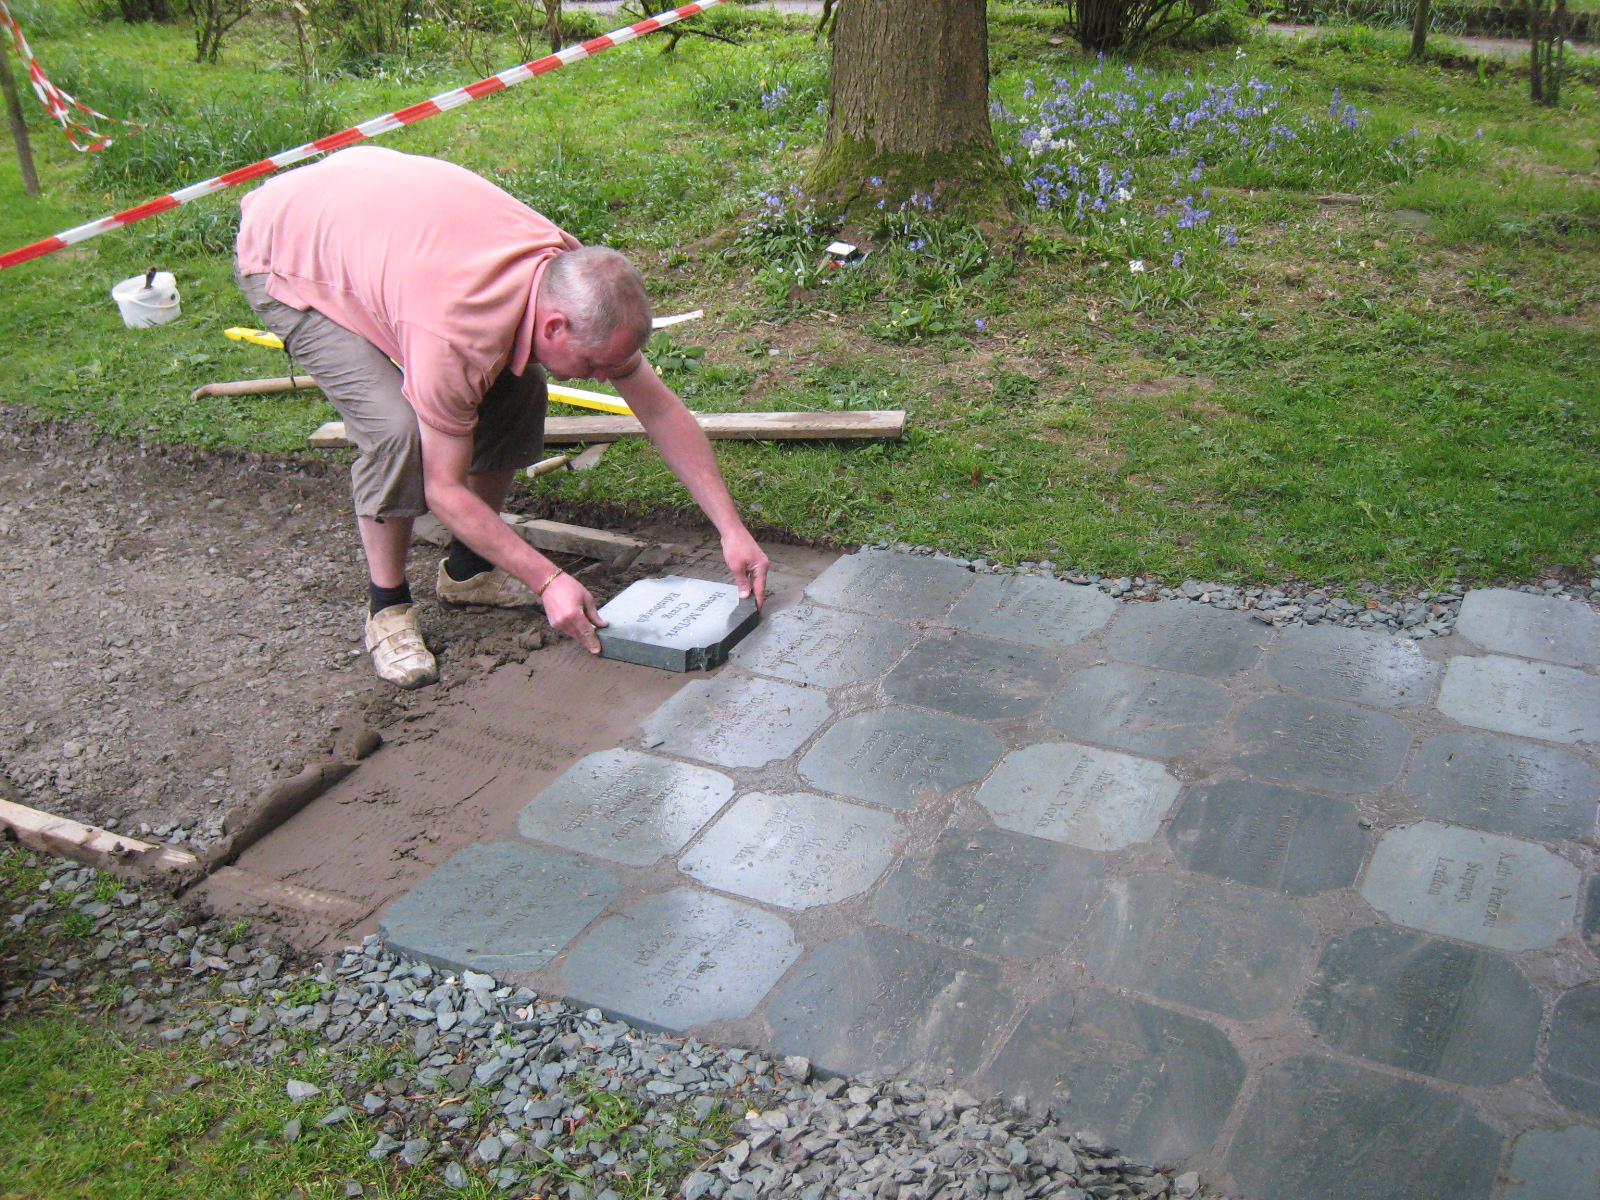 Grasmere daffodil garden grasmere village english lake district laying stones grasmere daffodil garden workwithnaturefo